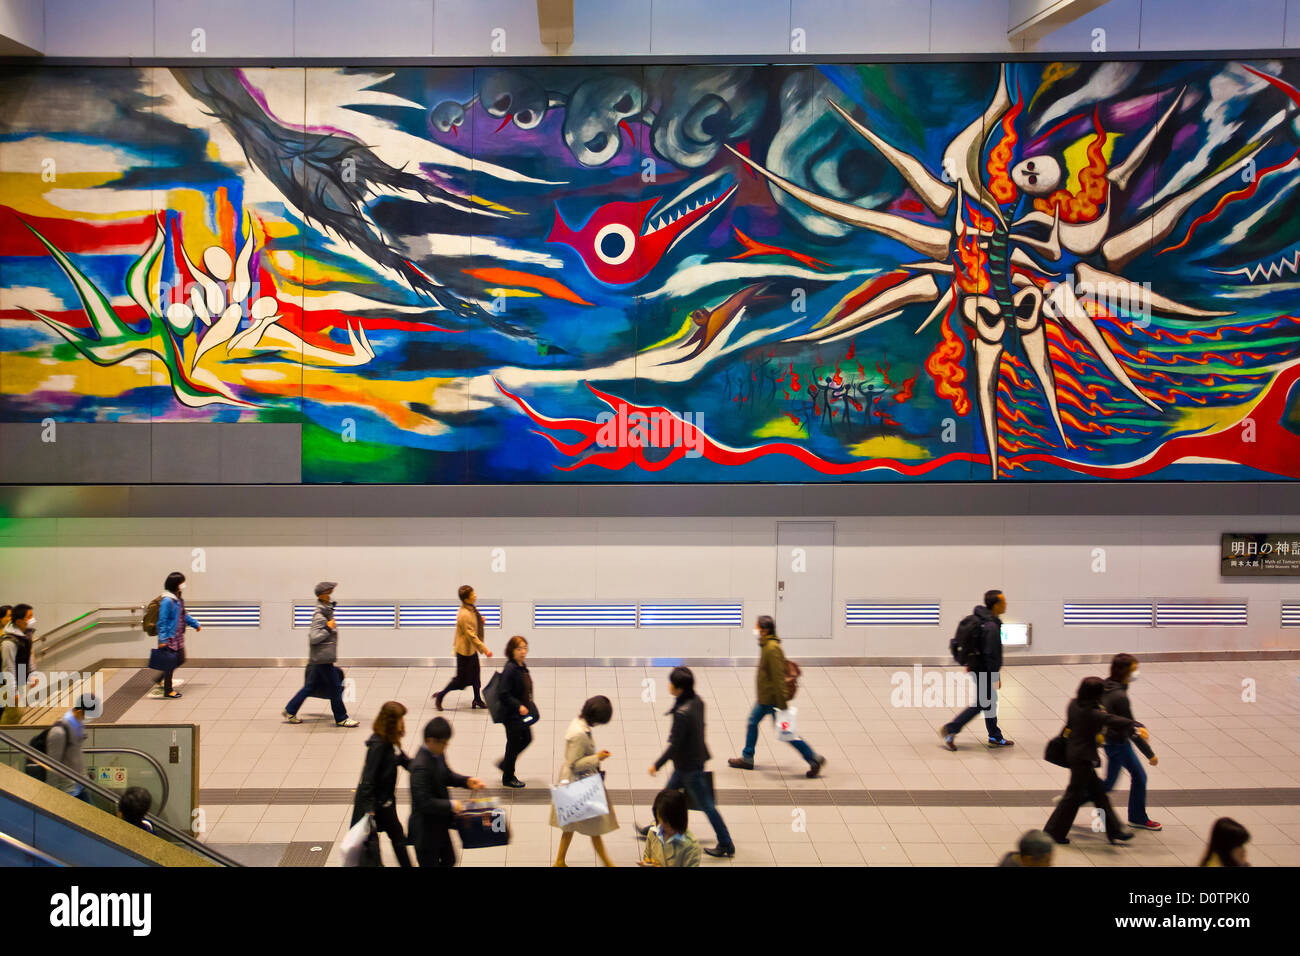 Japan, Asia, holiday, travel, Tokyo, City, Shibuya, Station, art, colourful, hall, modern, mural, painting, transfer - Stock Image